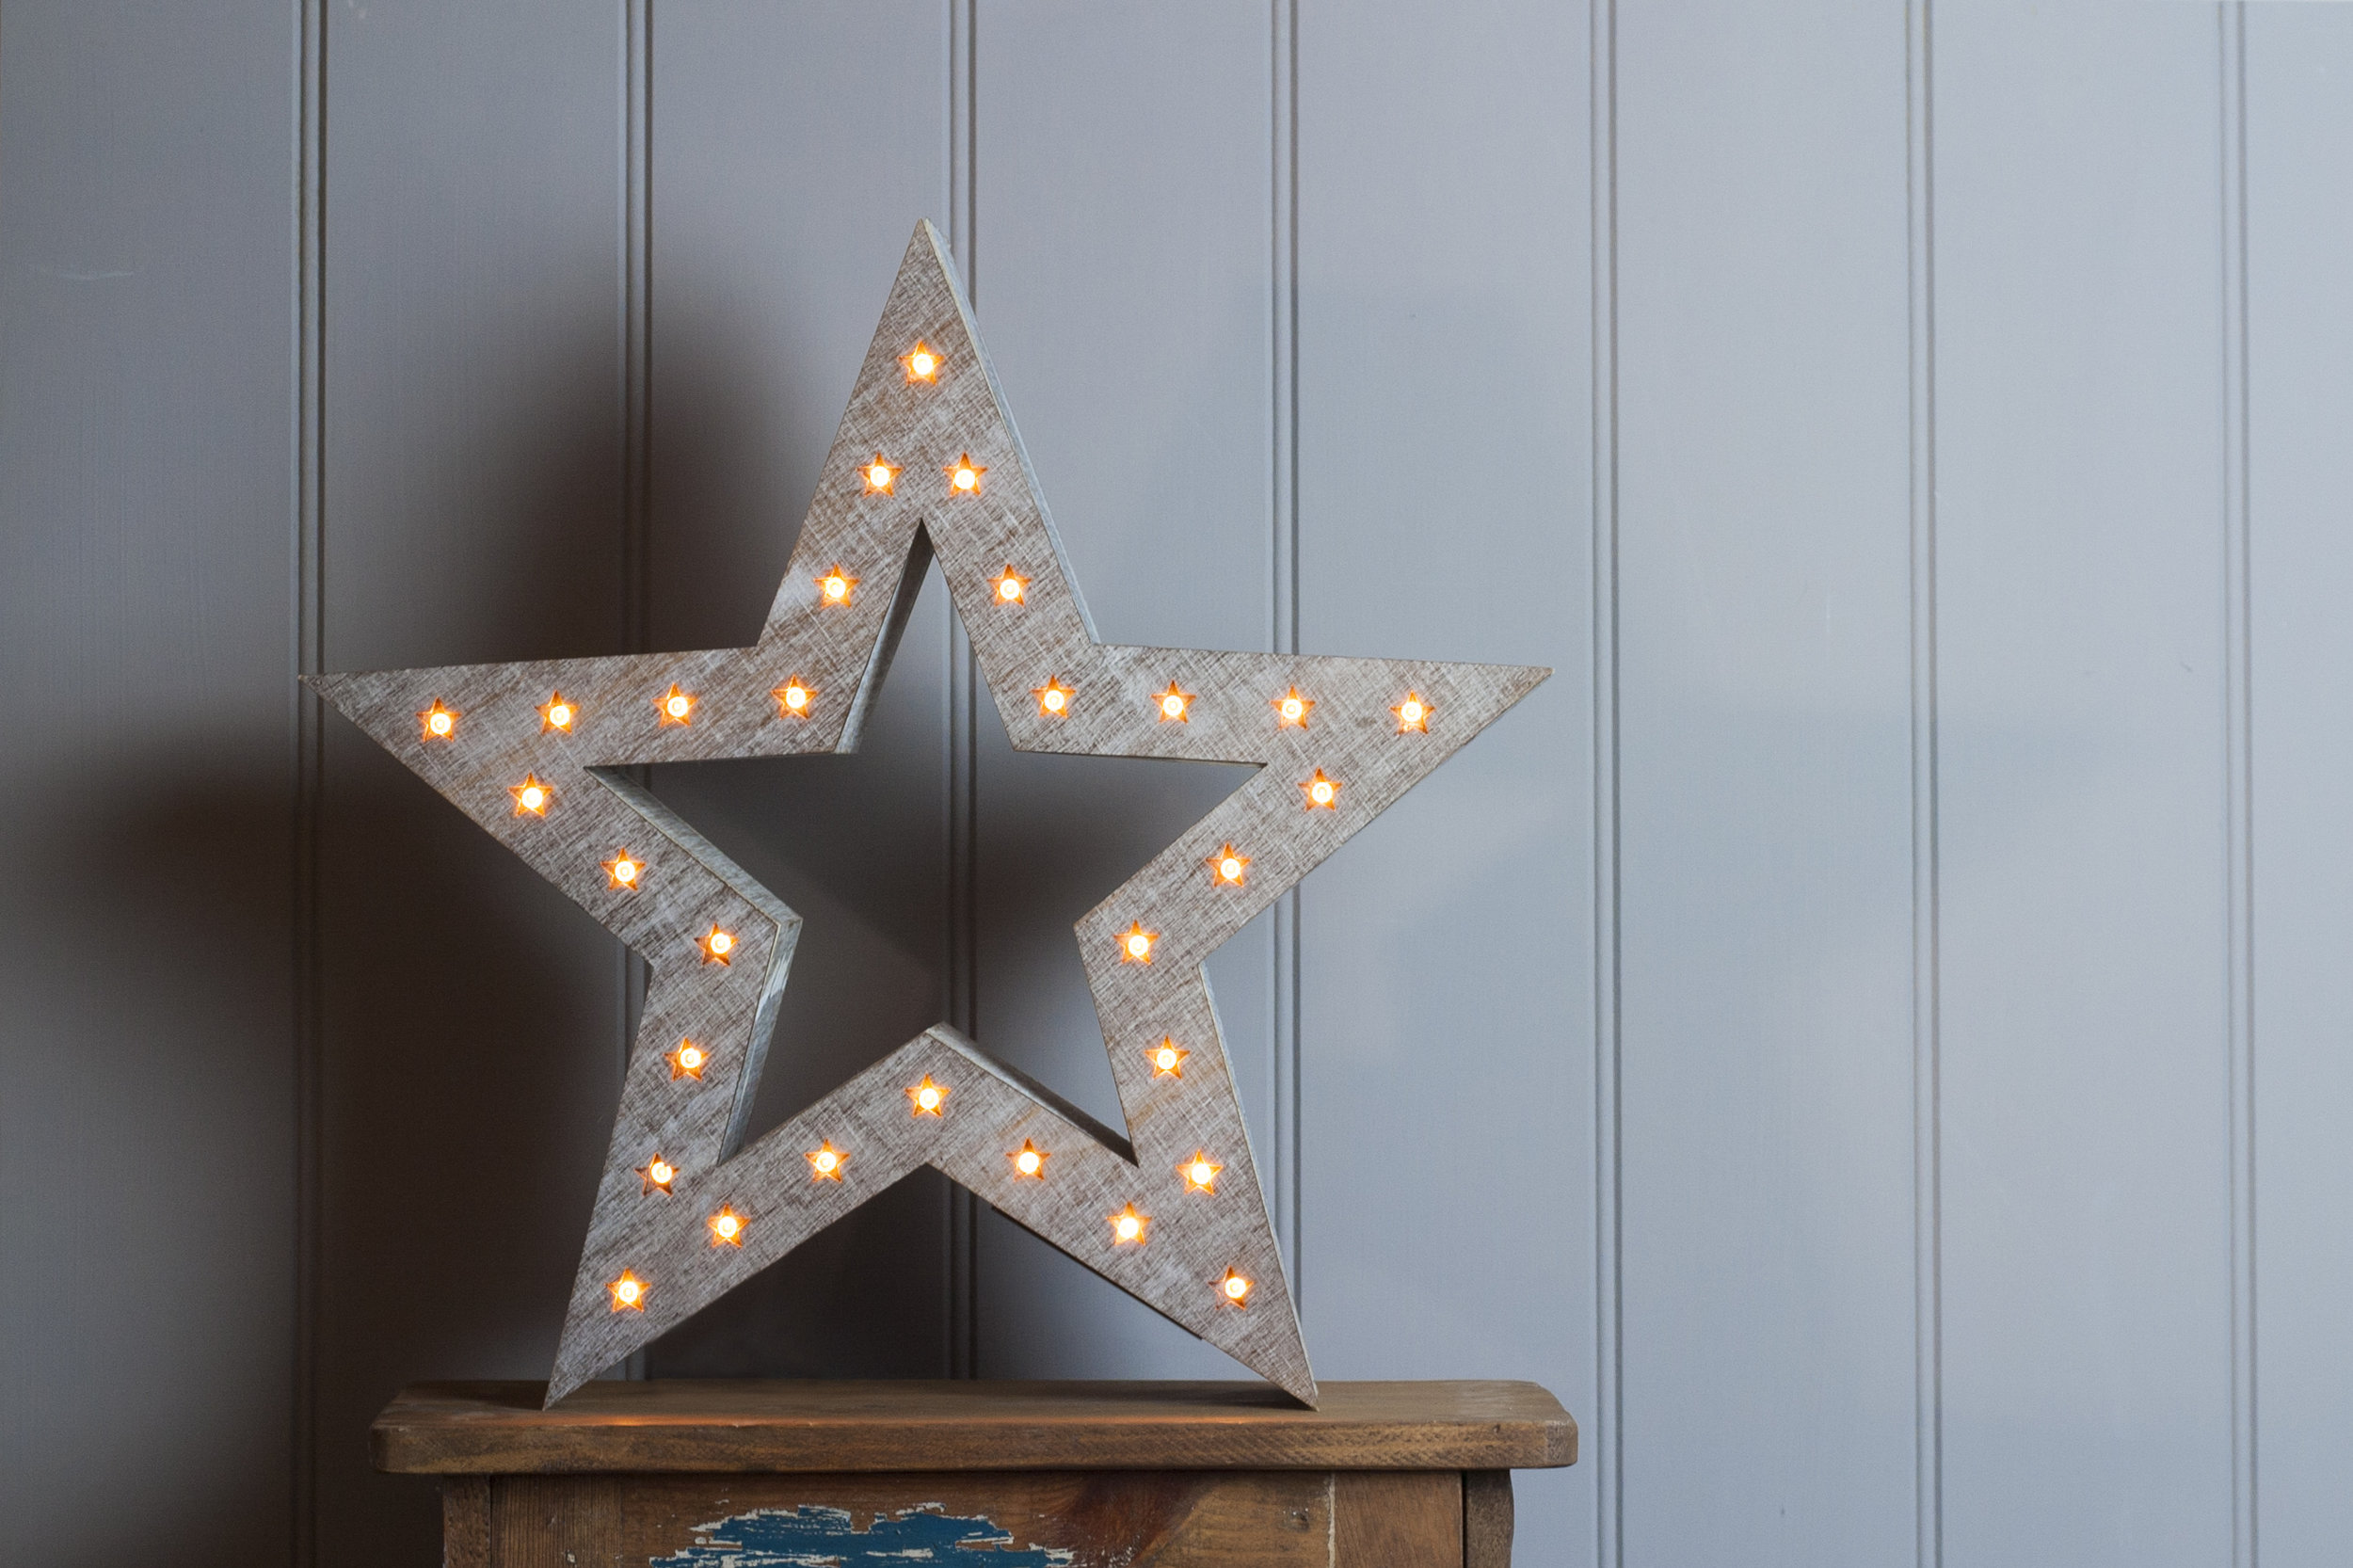 wooden Christmas star with lights embedded